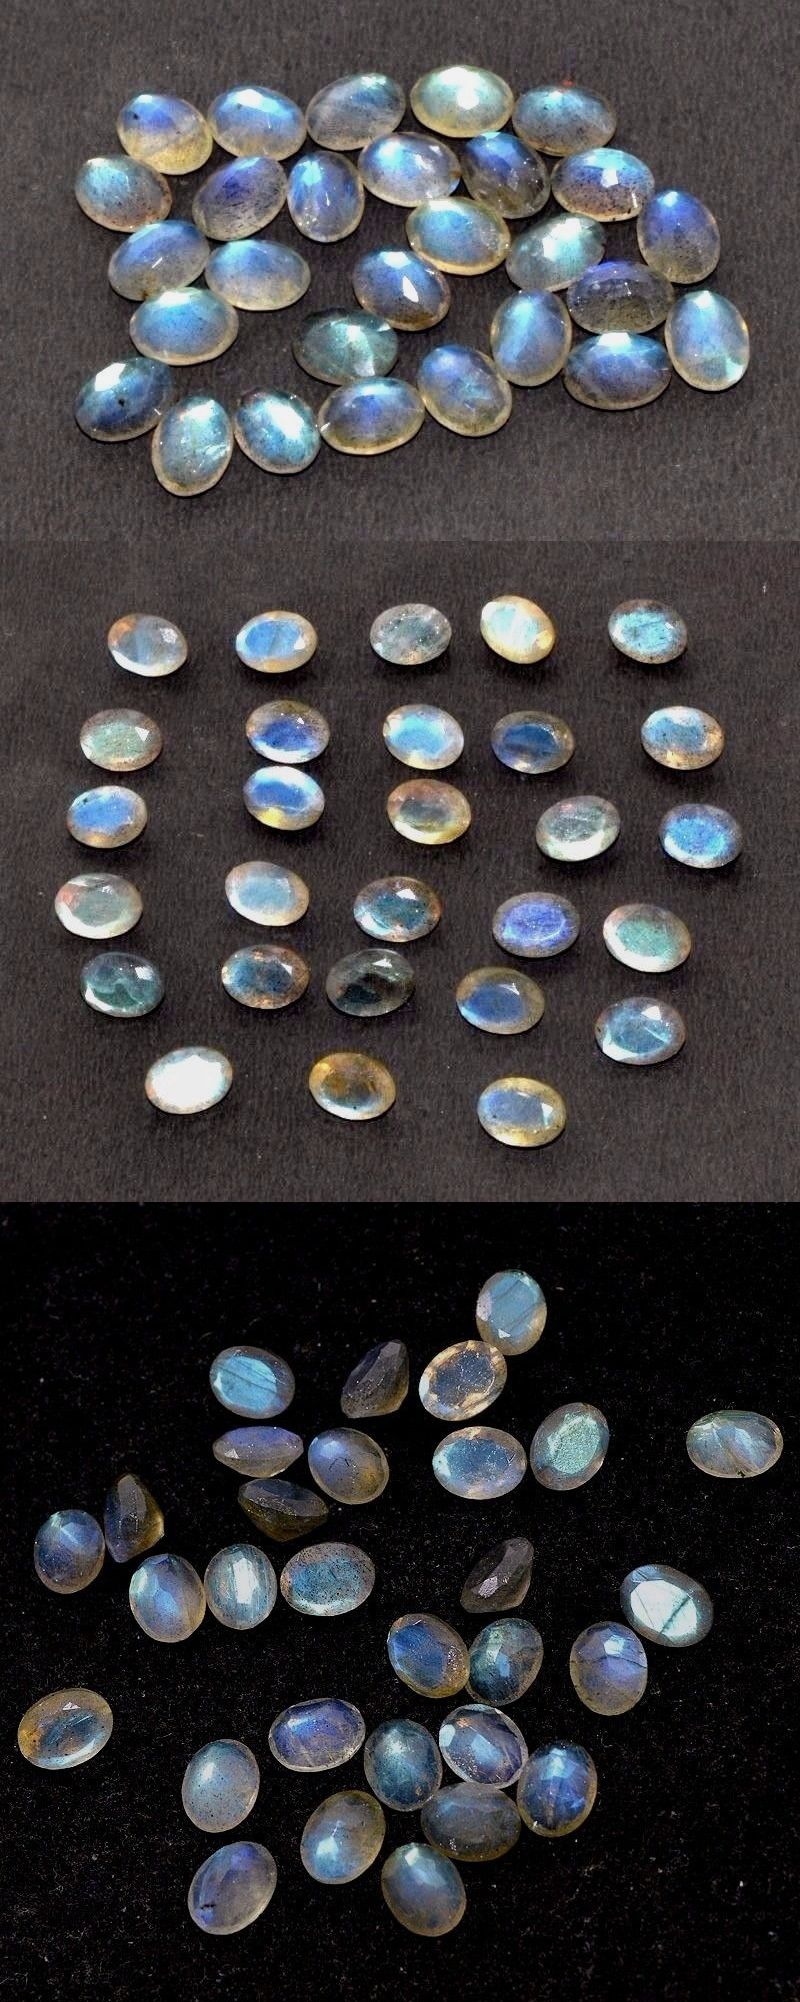 Labradorite 164393: 41.40 Ct.100% Natural Blue Fire Labradorite Faceted Cut Oval 25 Pcs 8X6 Gemstone BUY IT NOW ONLY: $38.0